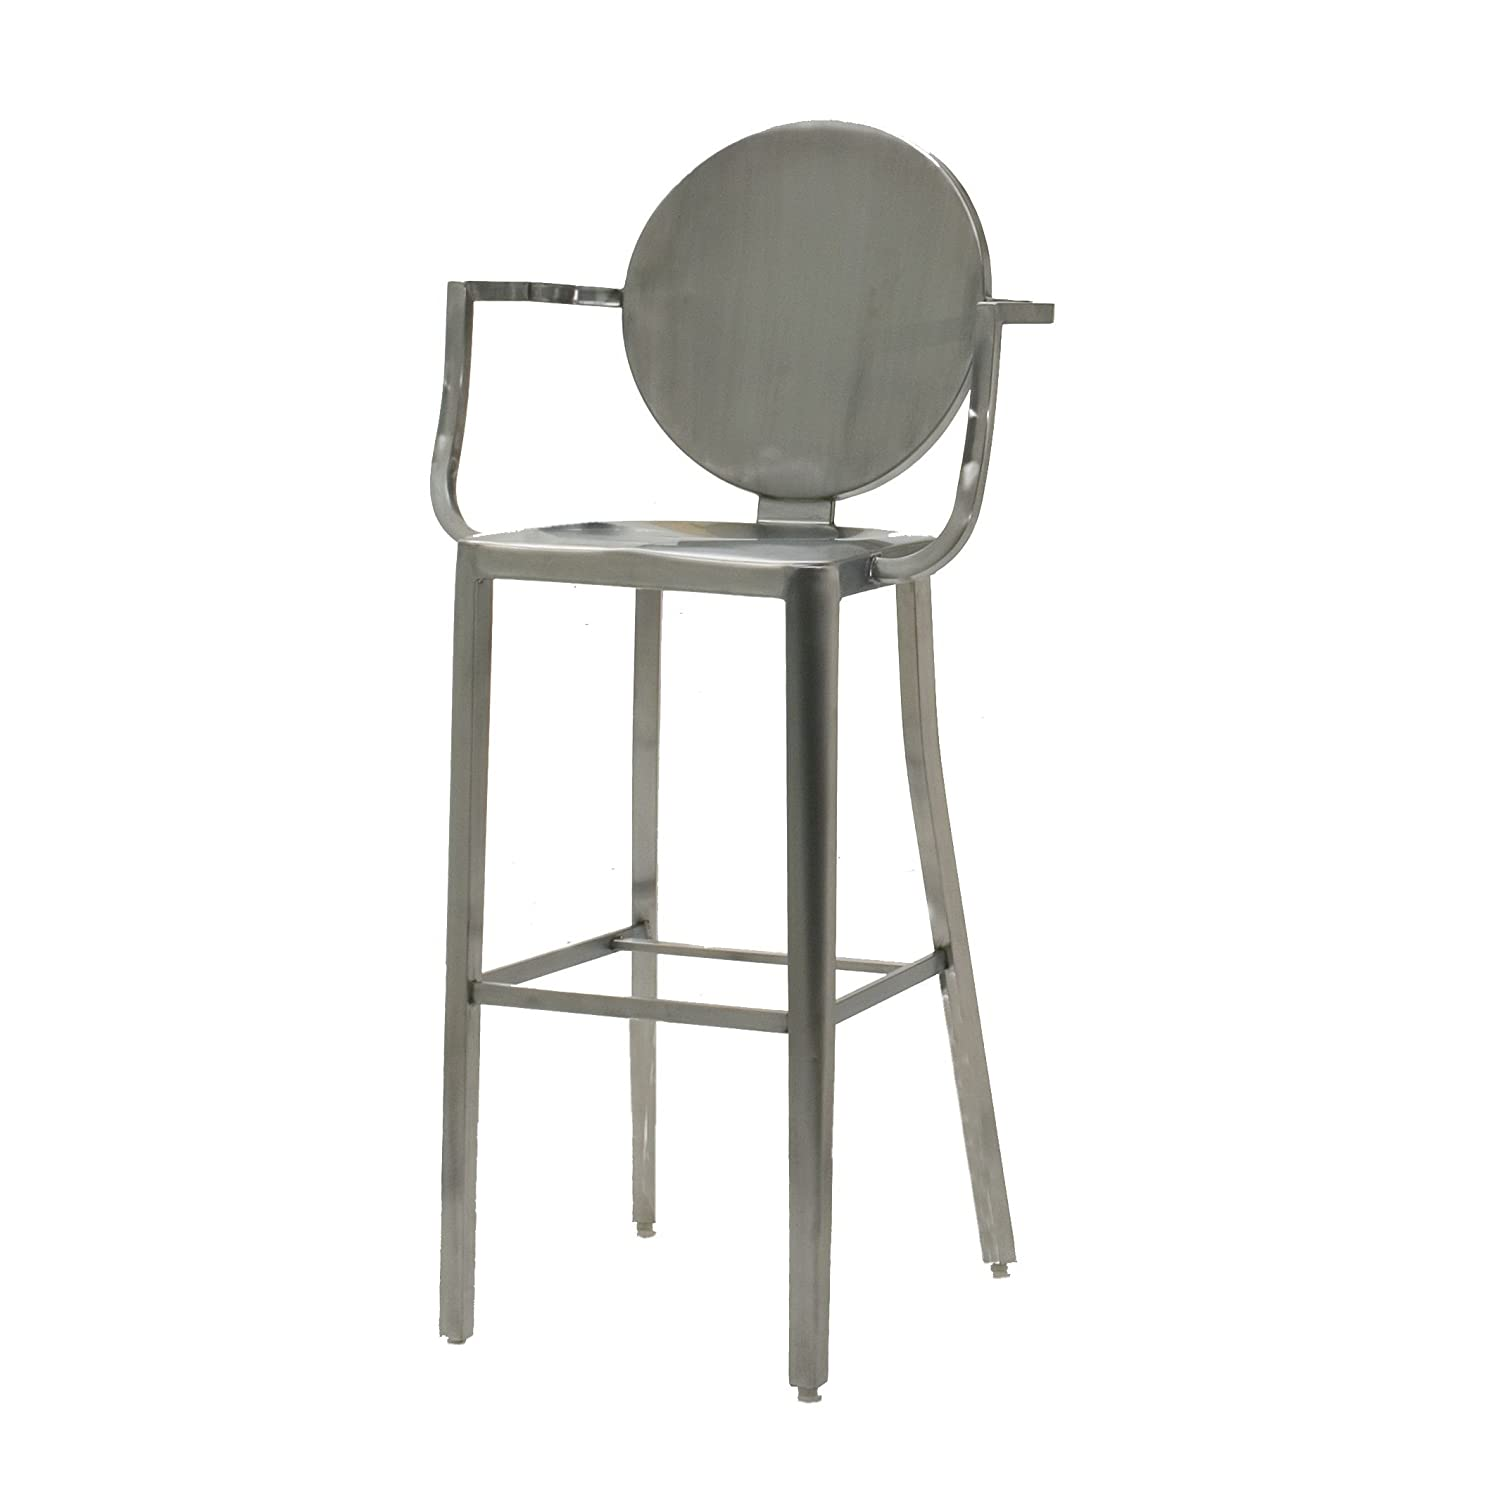 Dalton Home Collection Indoor Chair Collection Brushed Stainless Steel Round Back Bar Height Stool, 30-Inch